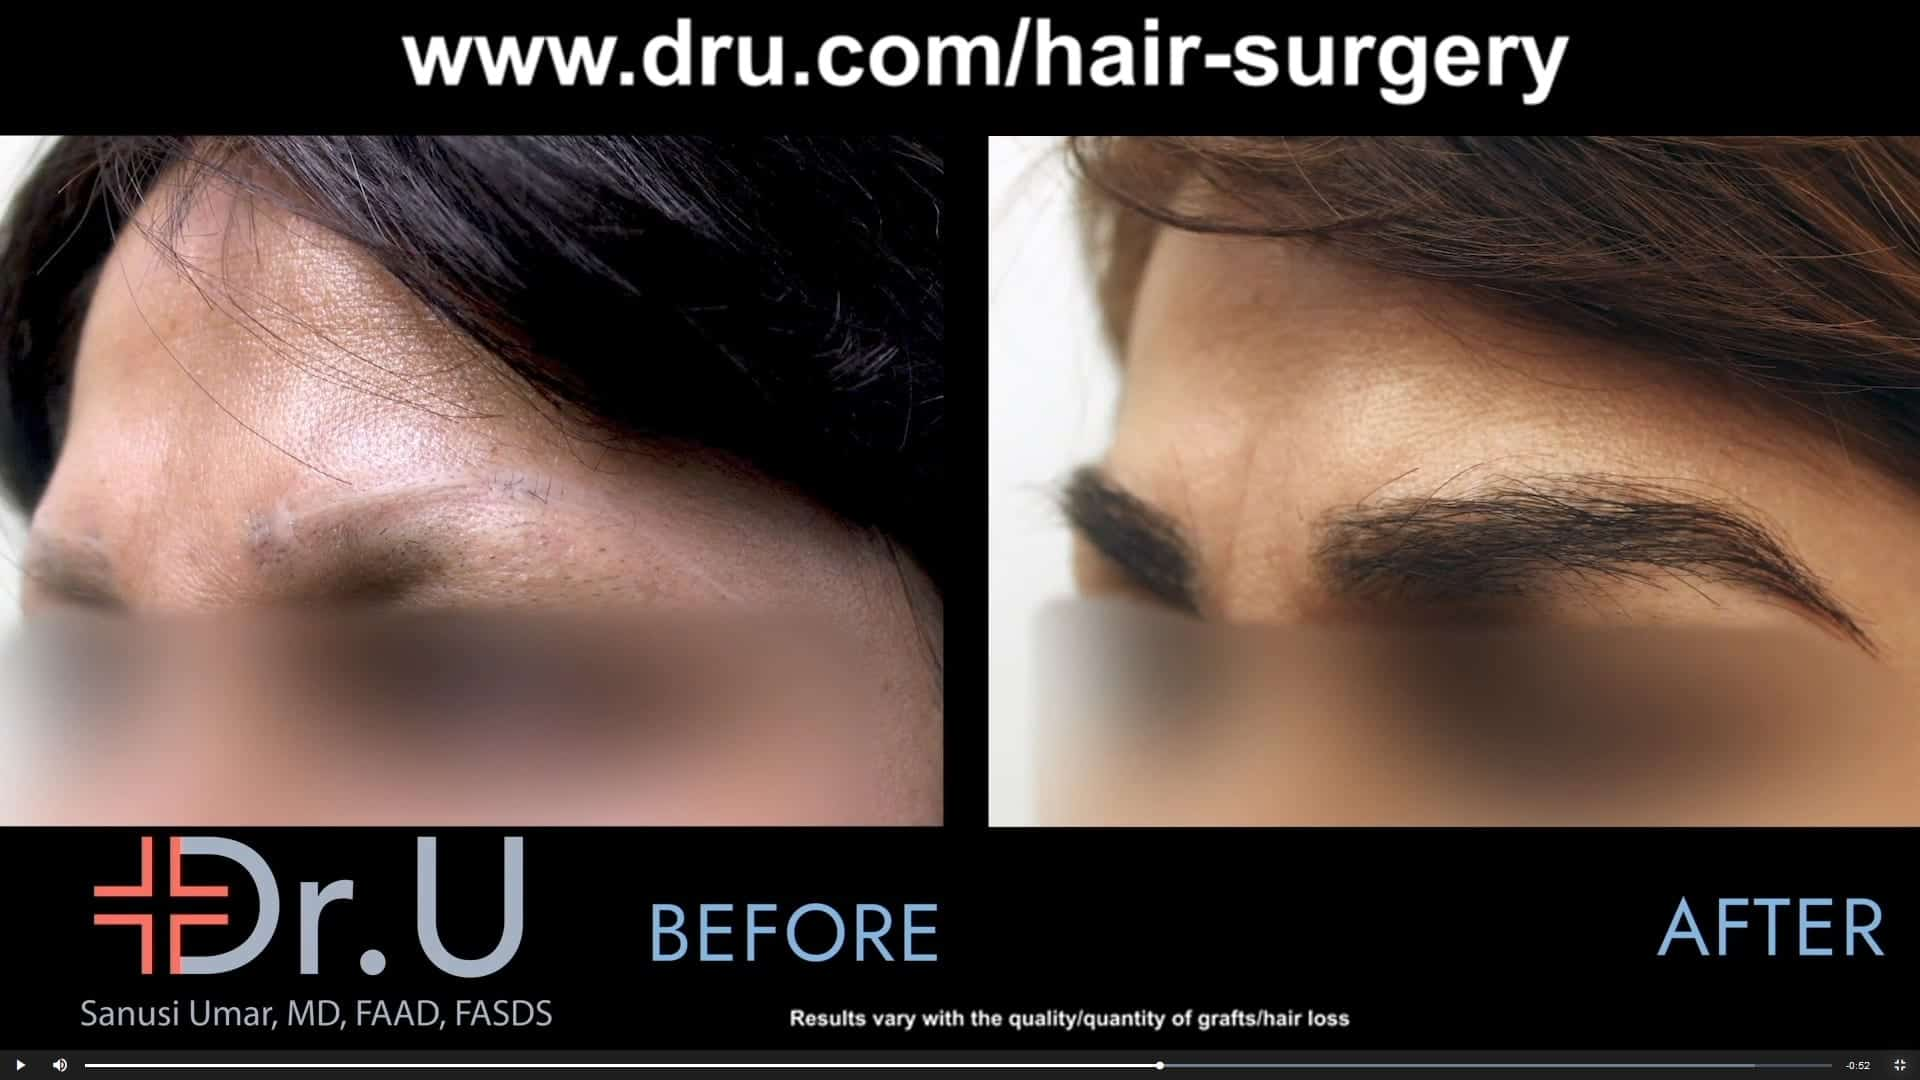 After a pubic hair to eyebrow transplant, this Los Angeles patient was able to restore a natural looking eyebrow that no longer looked scared or had eyebrow discoloration.*